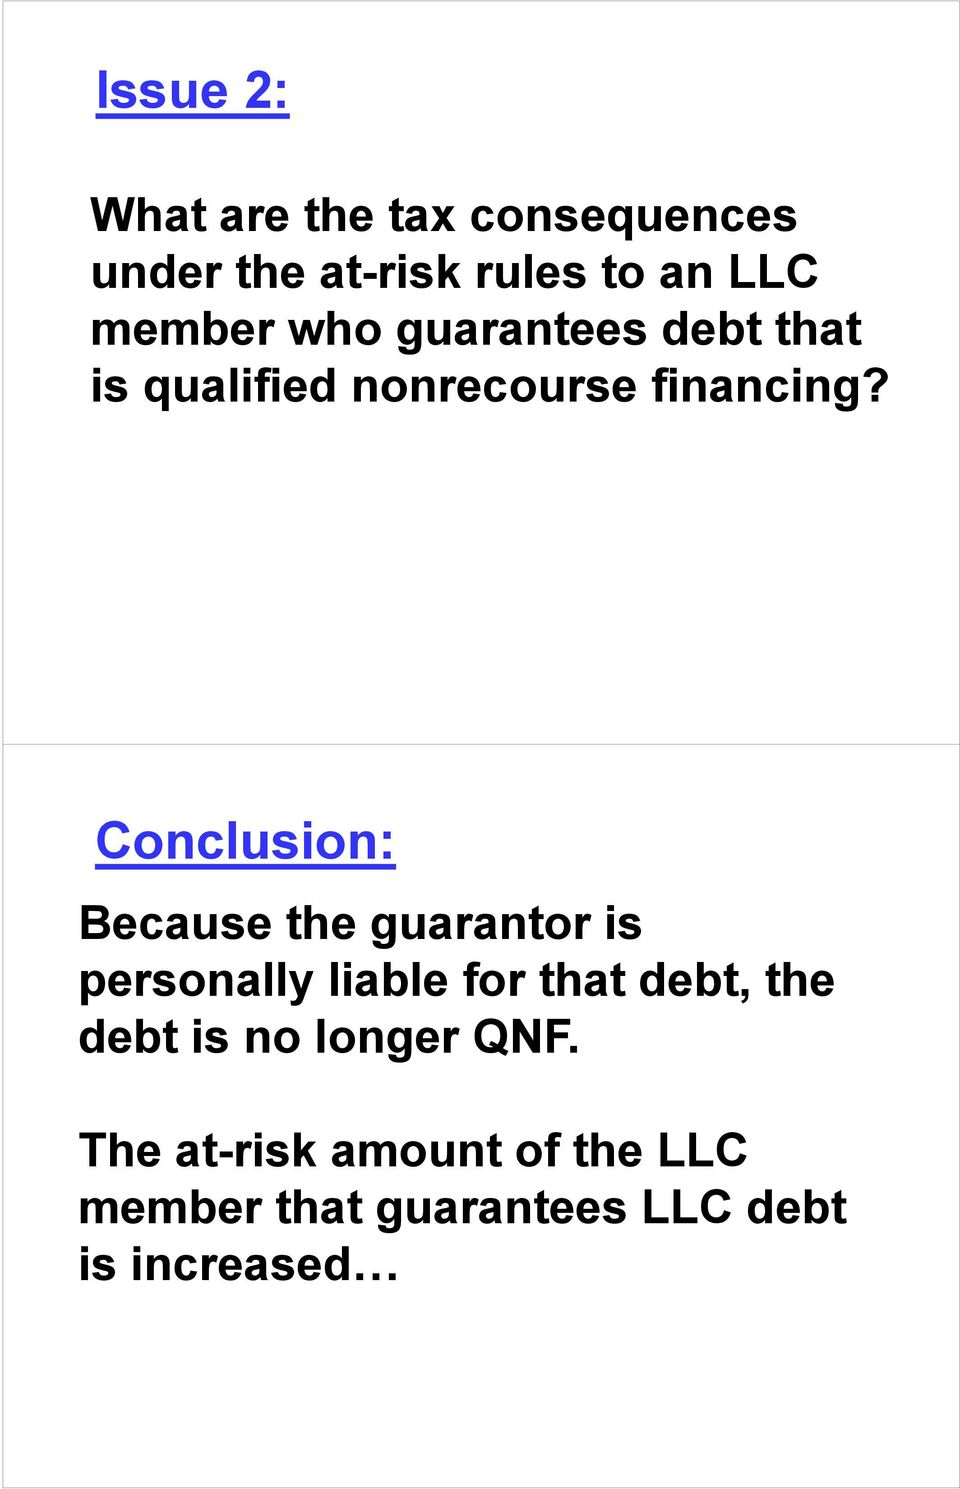 Conclusion: Because the guarantor is personally liable for that debt, the